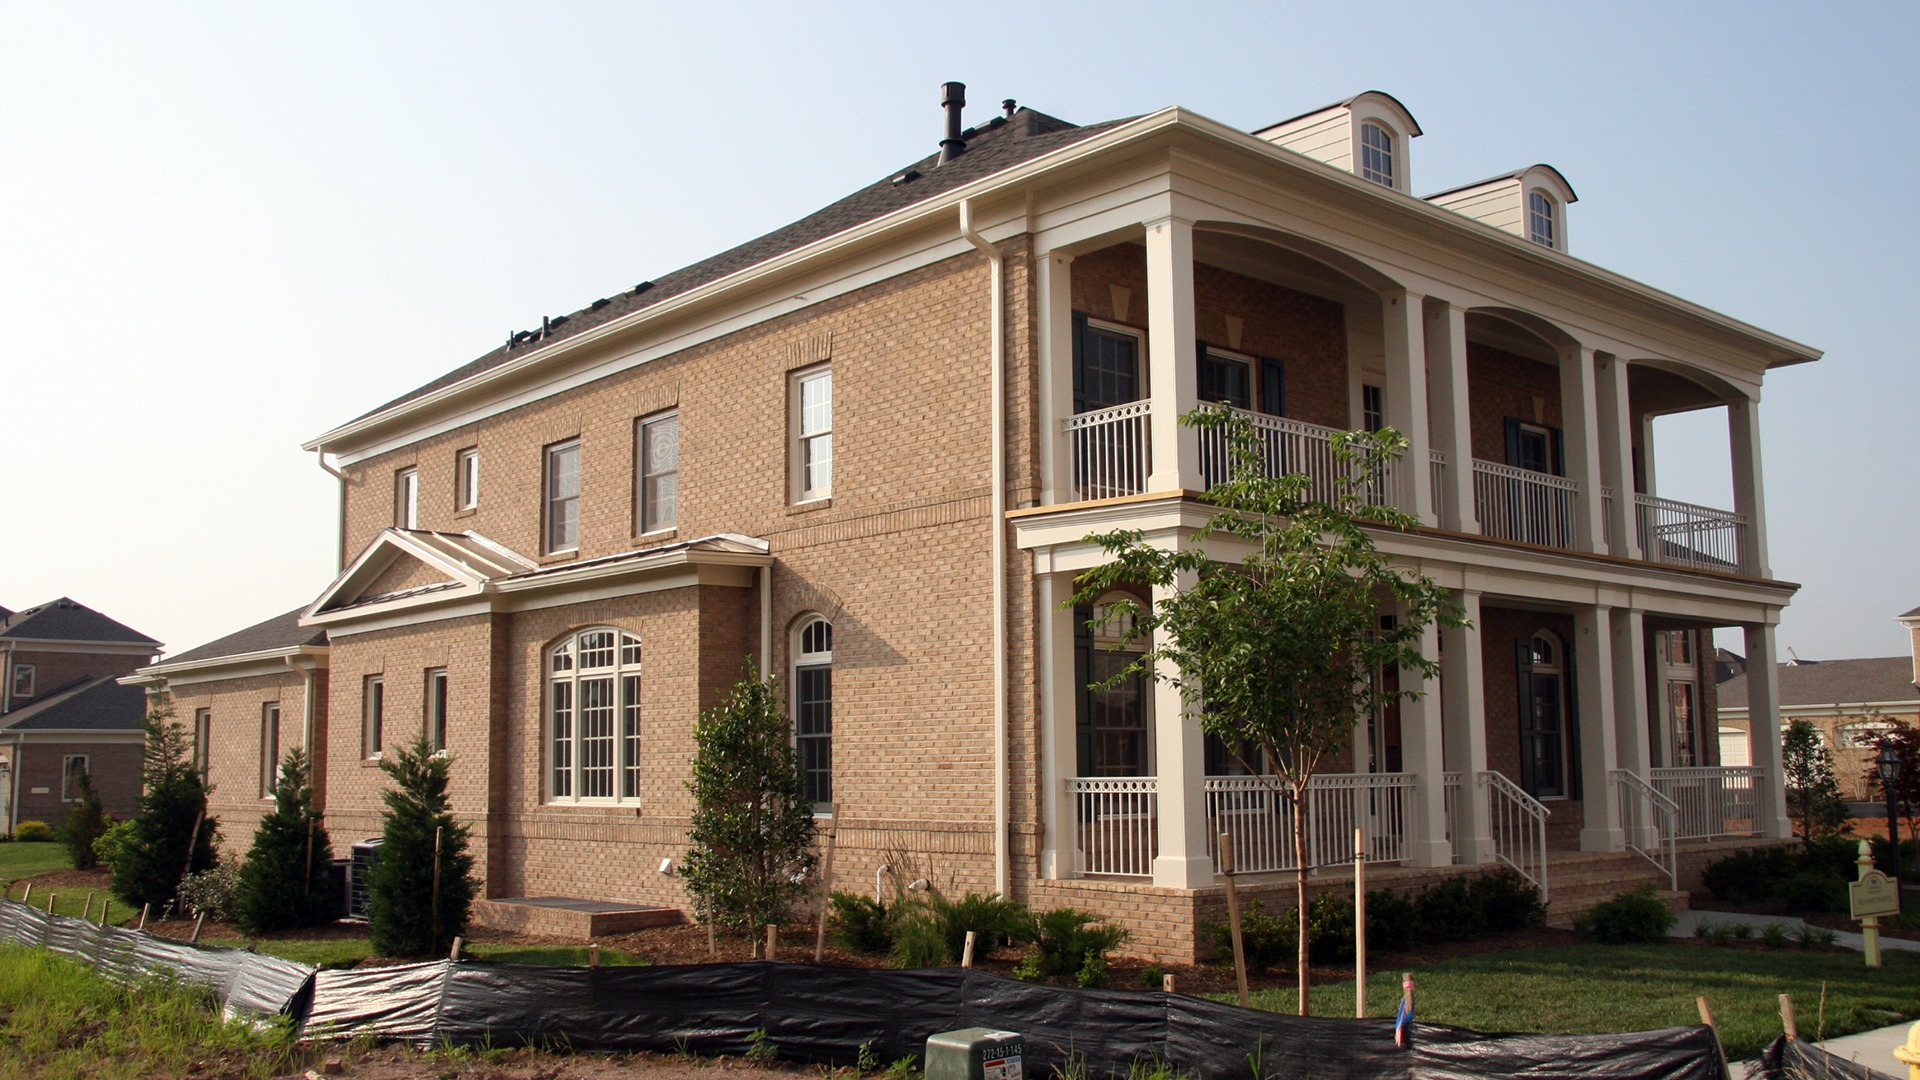 The Front Elevation of the Hampton model in Brambleton. Some options shown.